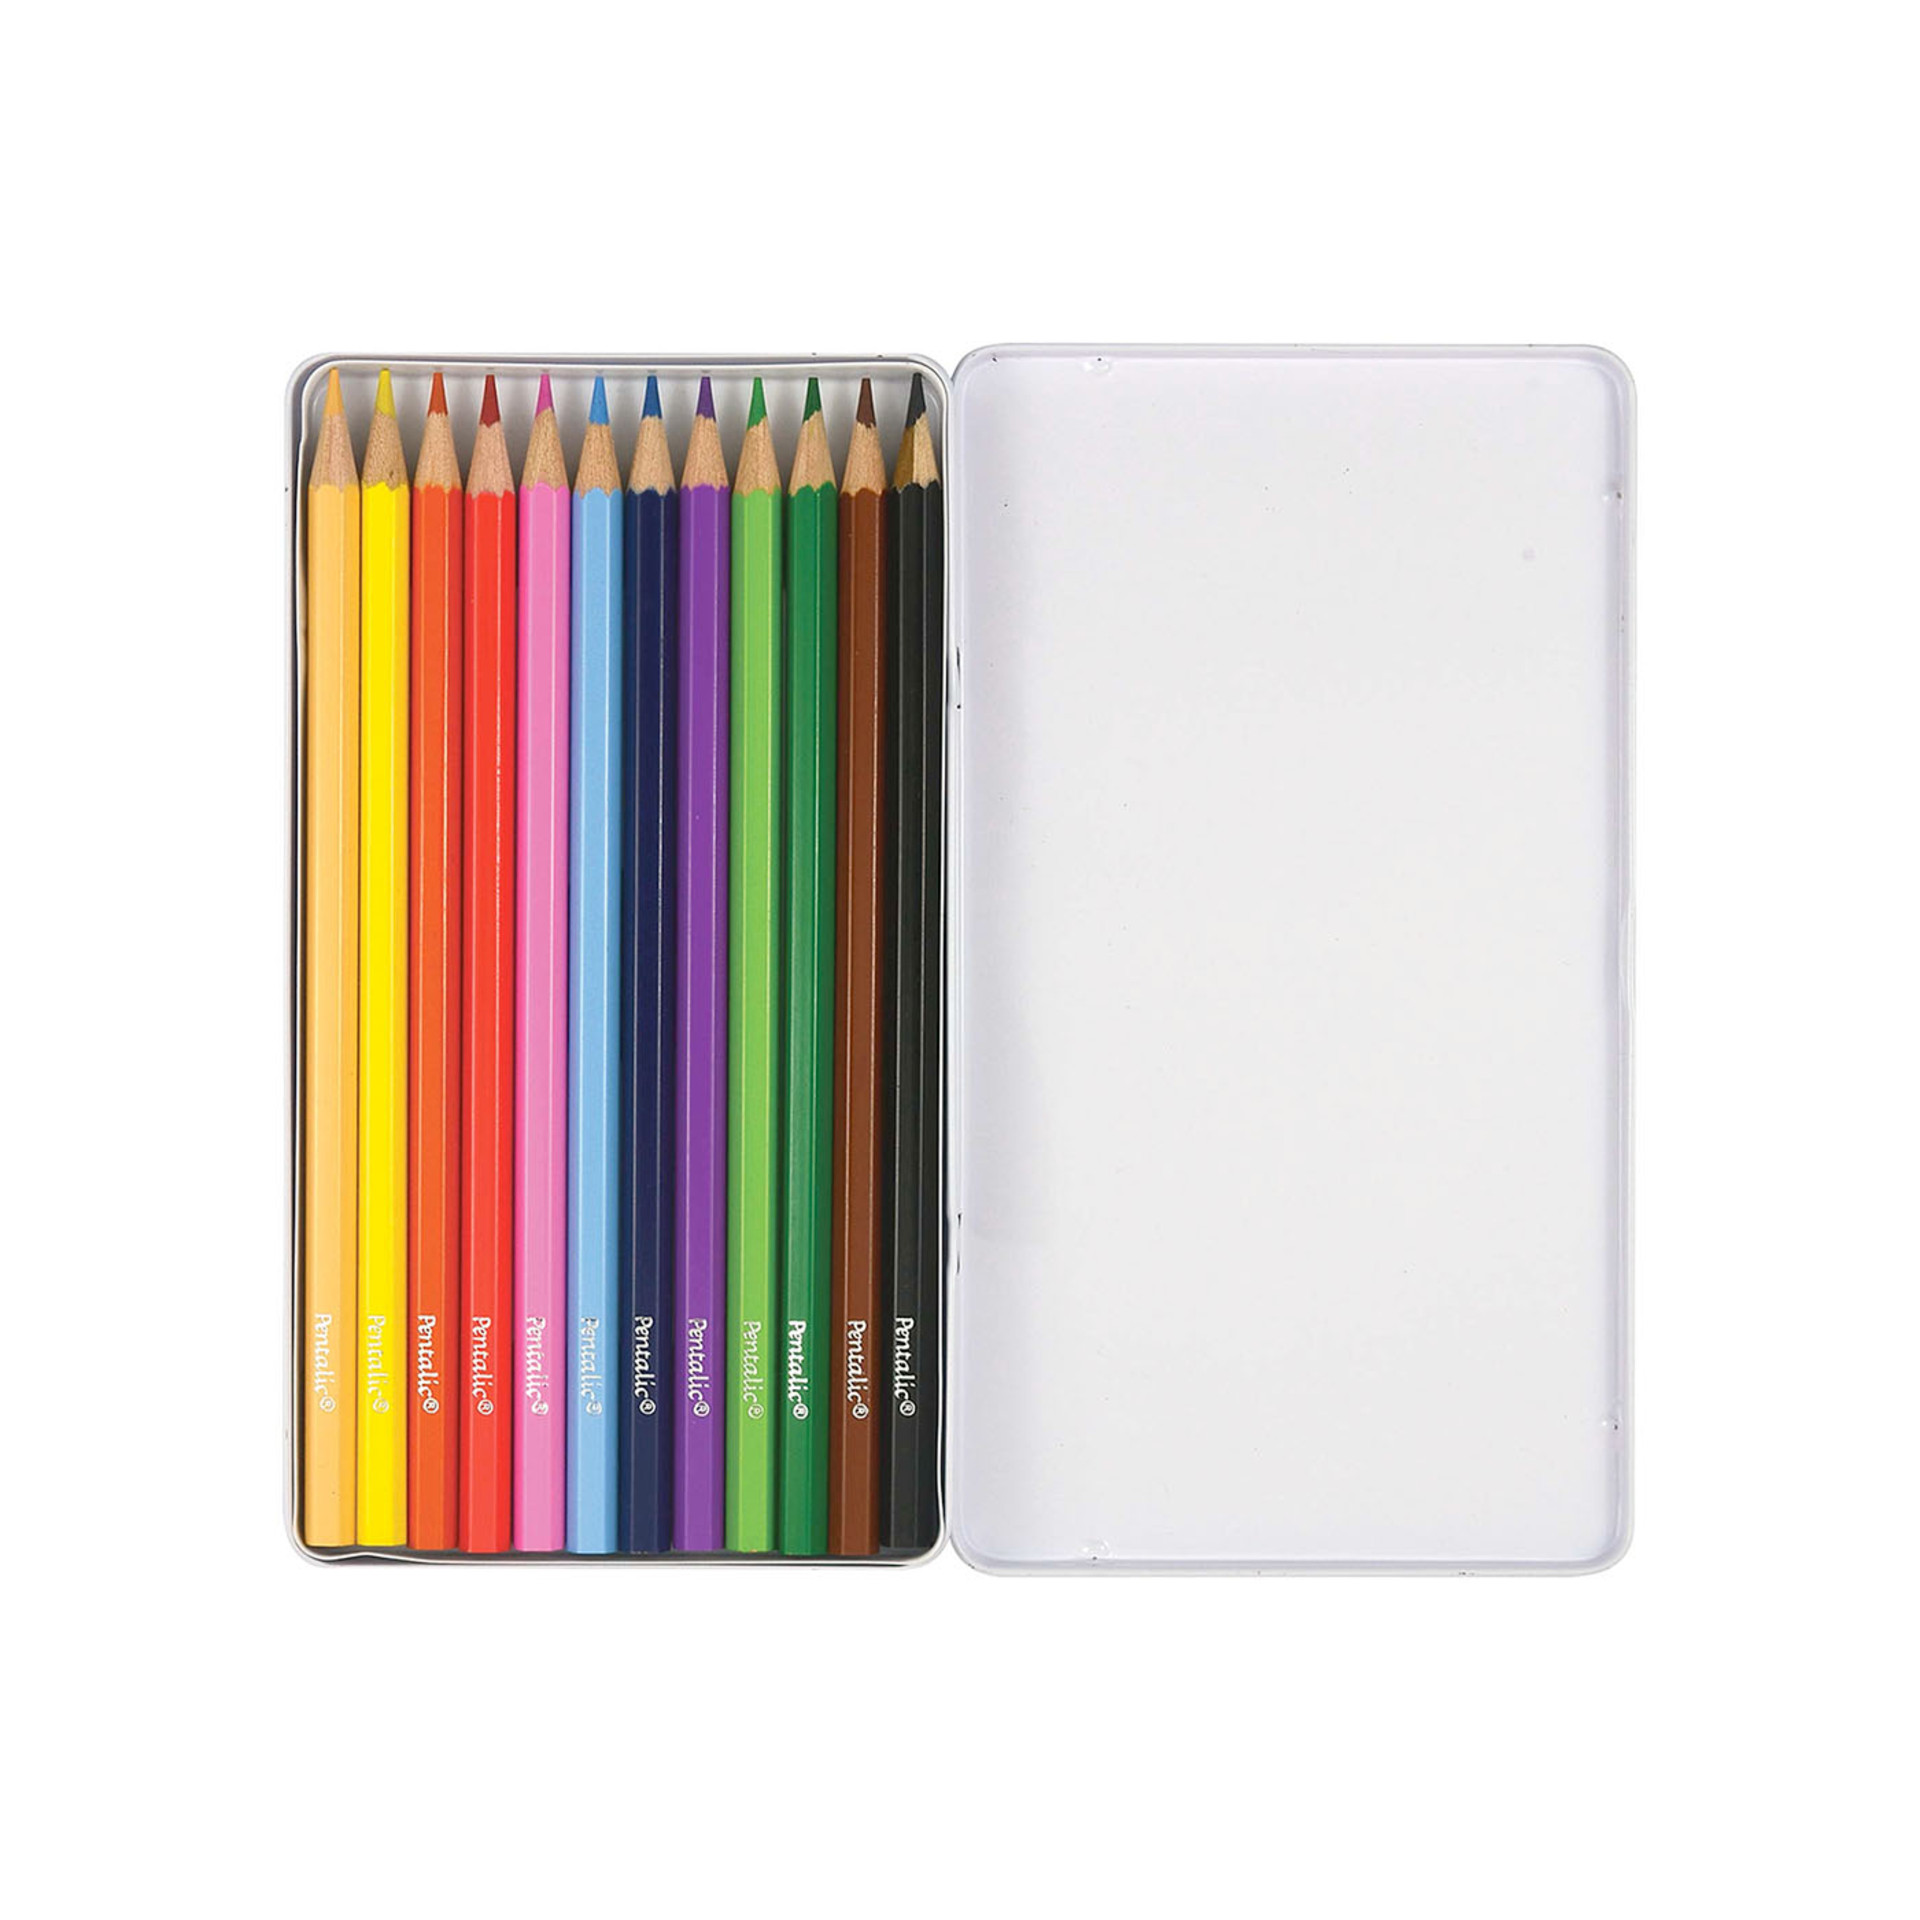 Pentalic Colored Pencil Set 24